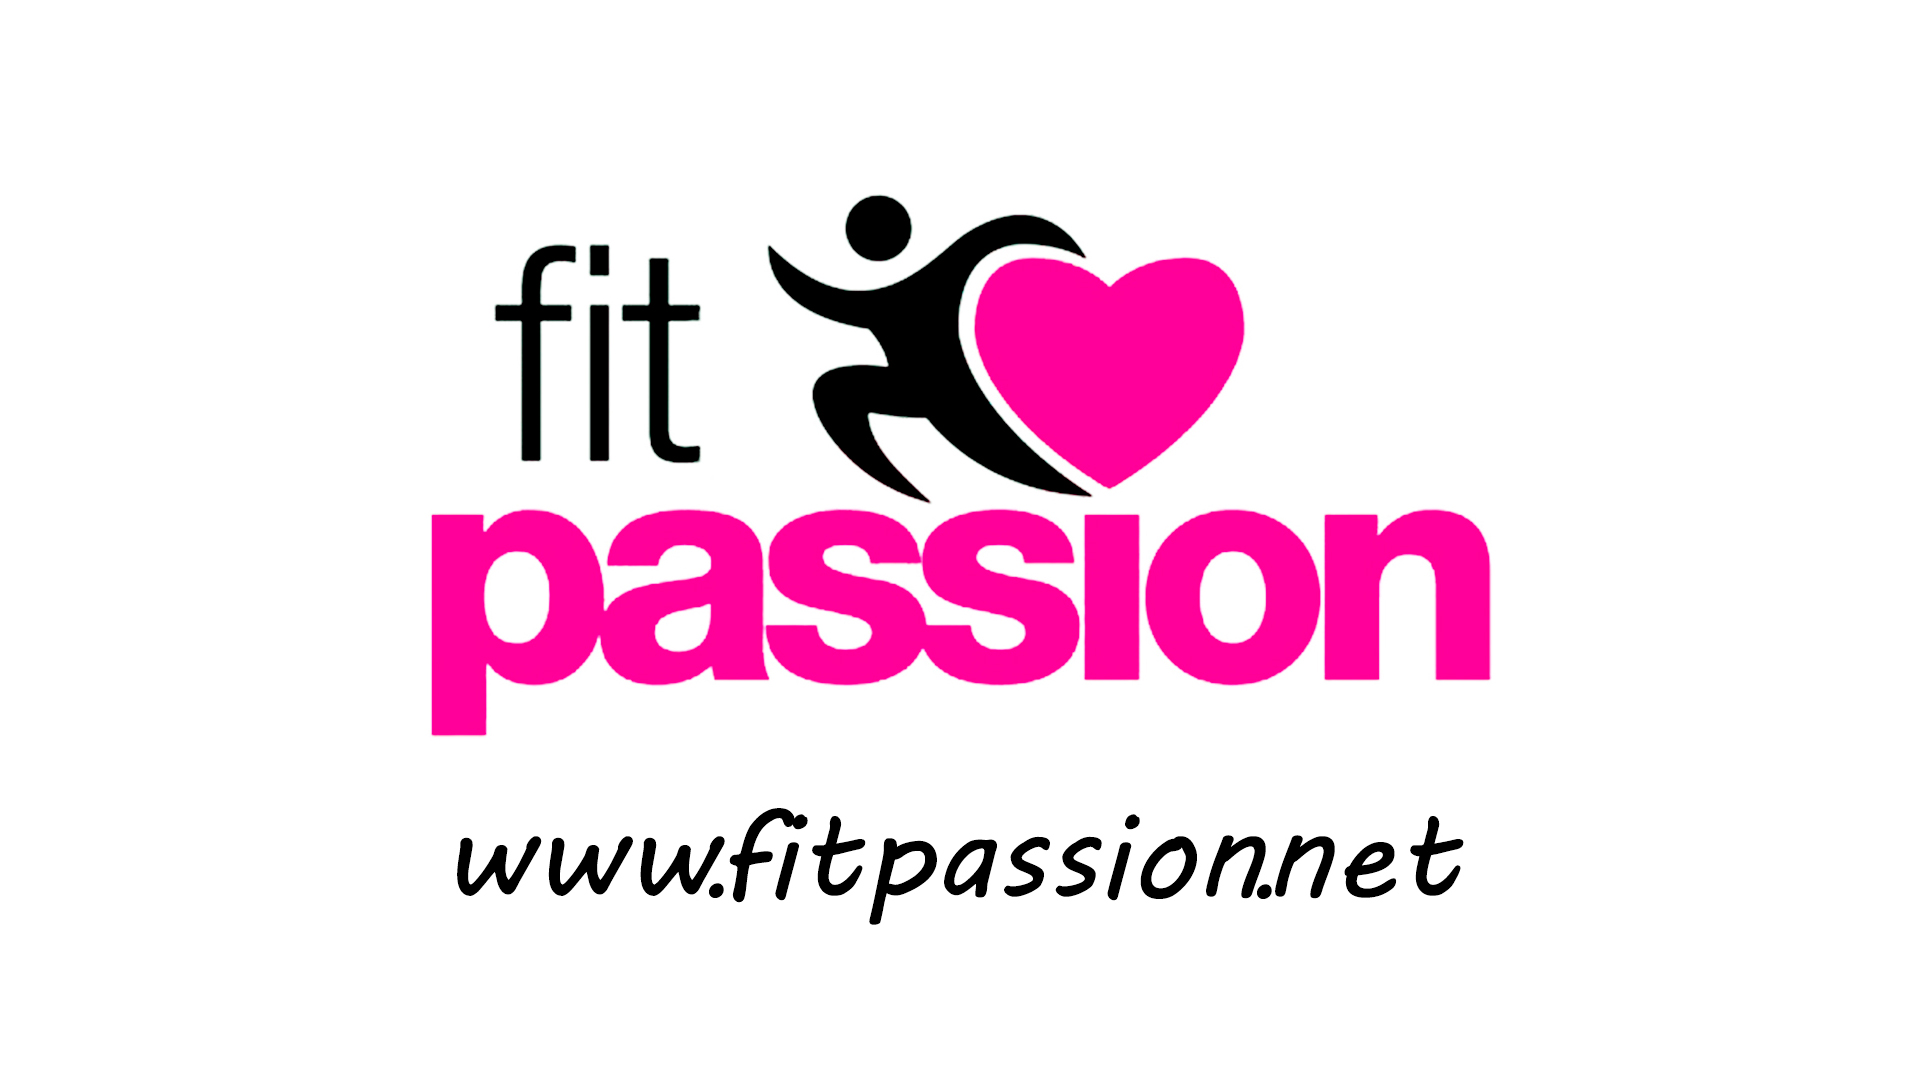 FIT PASSION . NET - MATTEO TORTELLO .COM